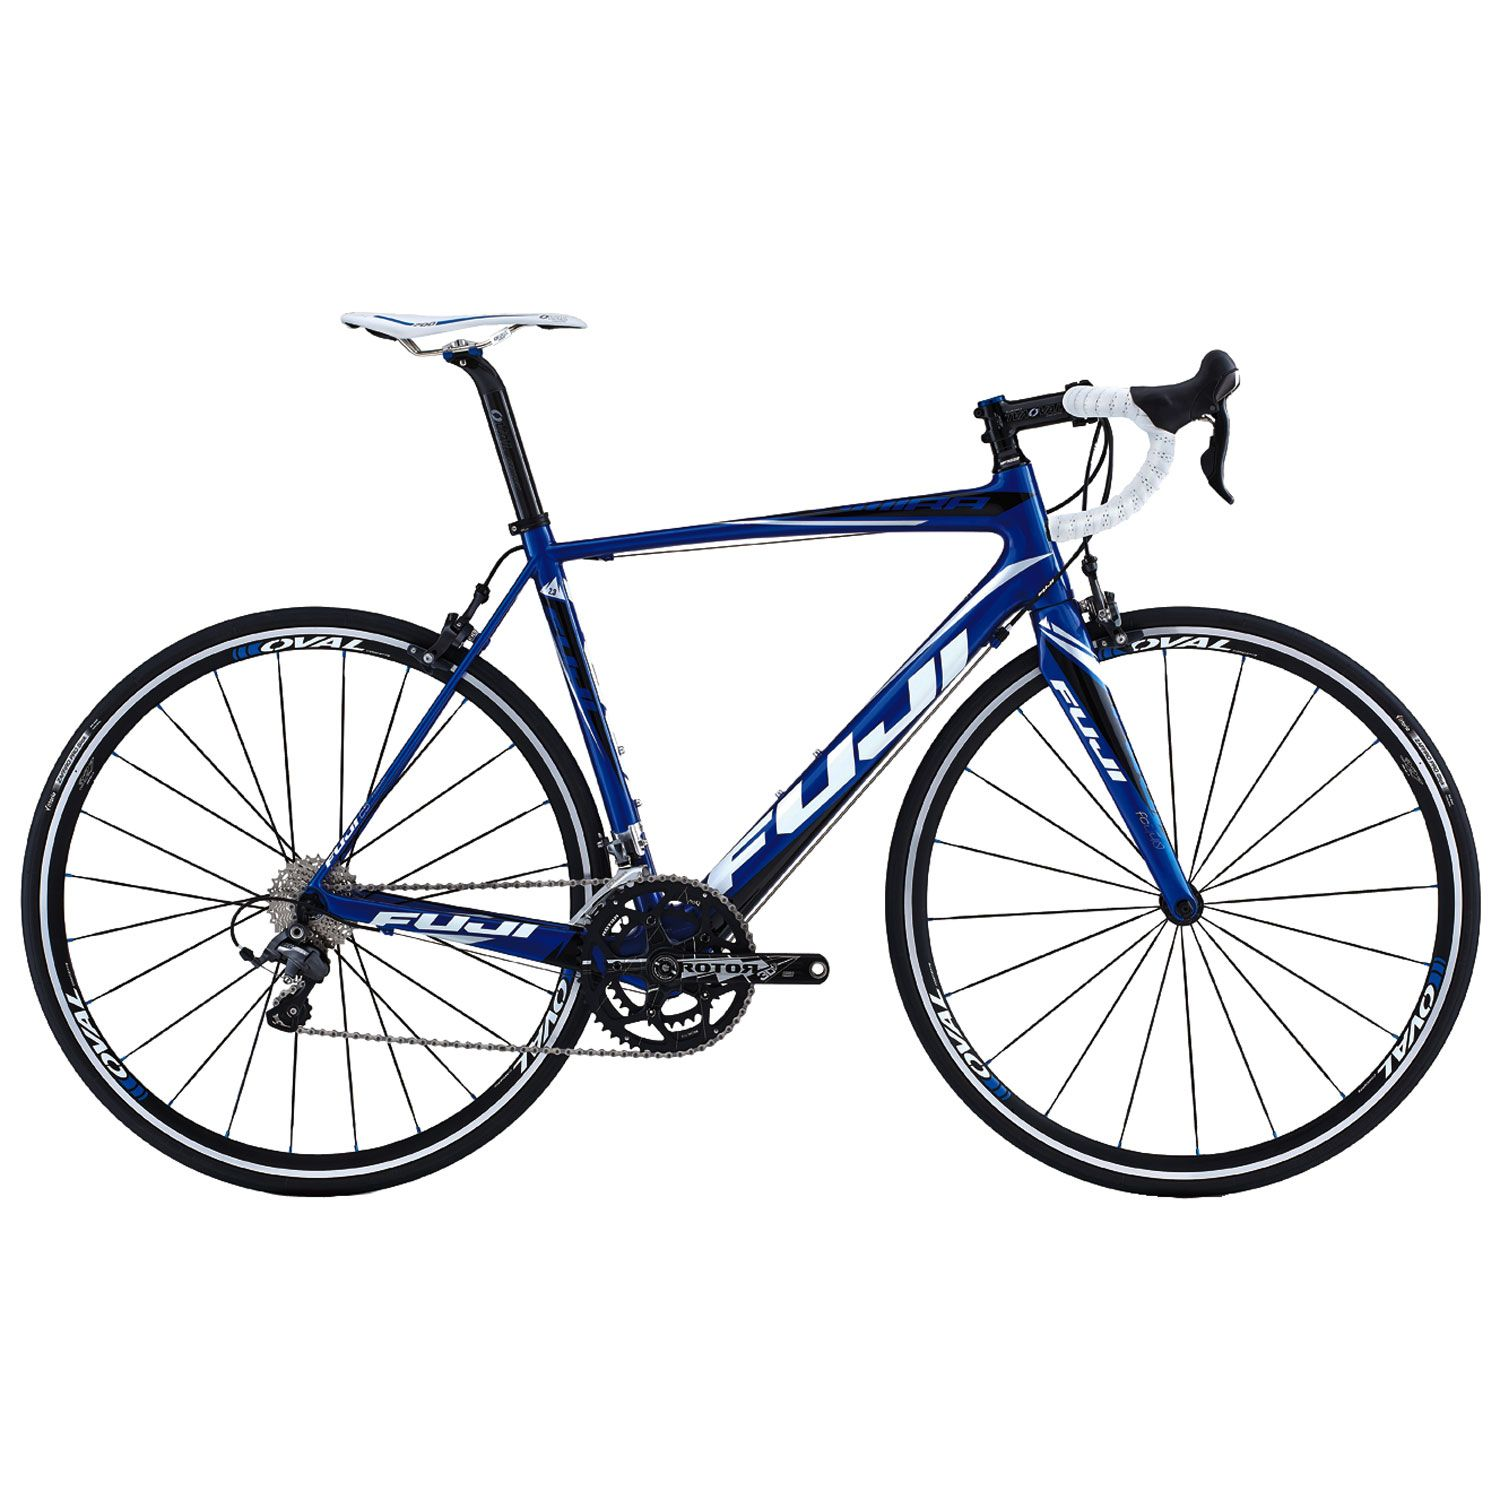 Fuji Altamira 2.3 C Road Bike - 2013 - Fuji